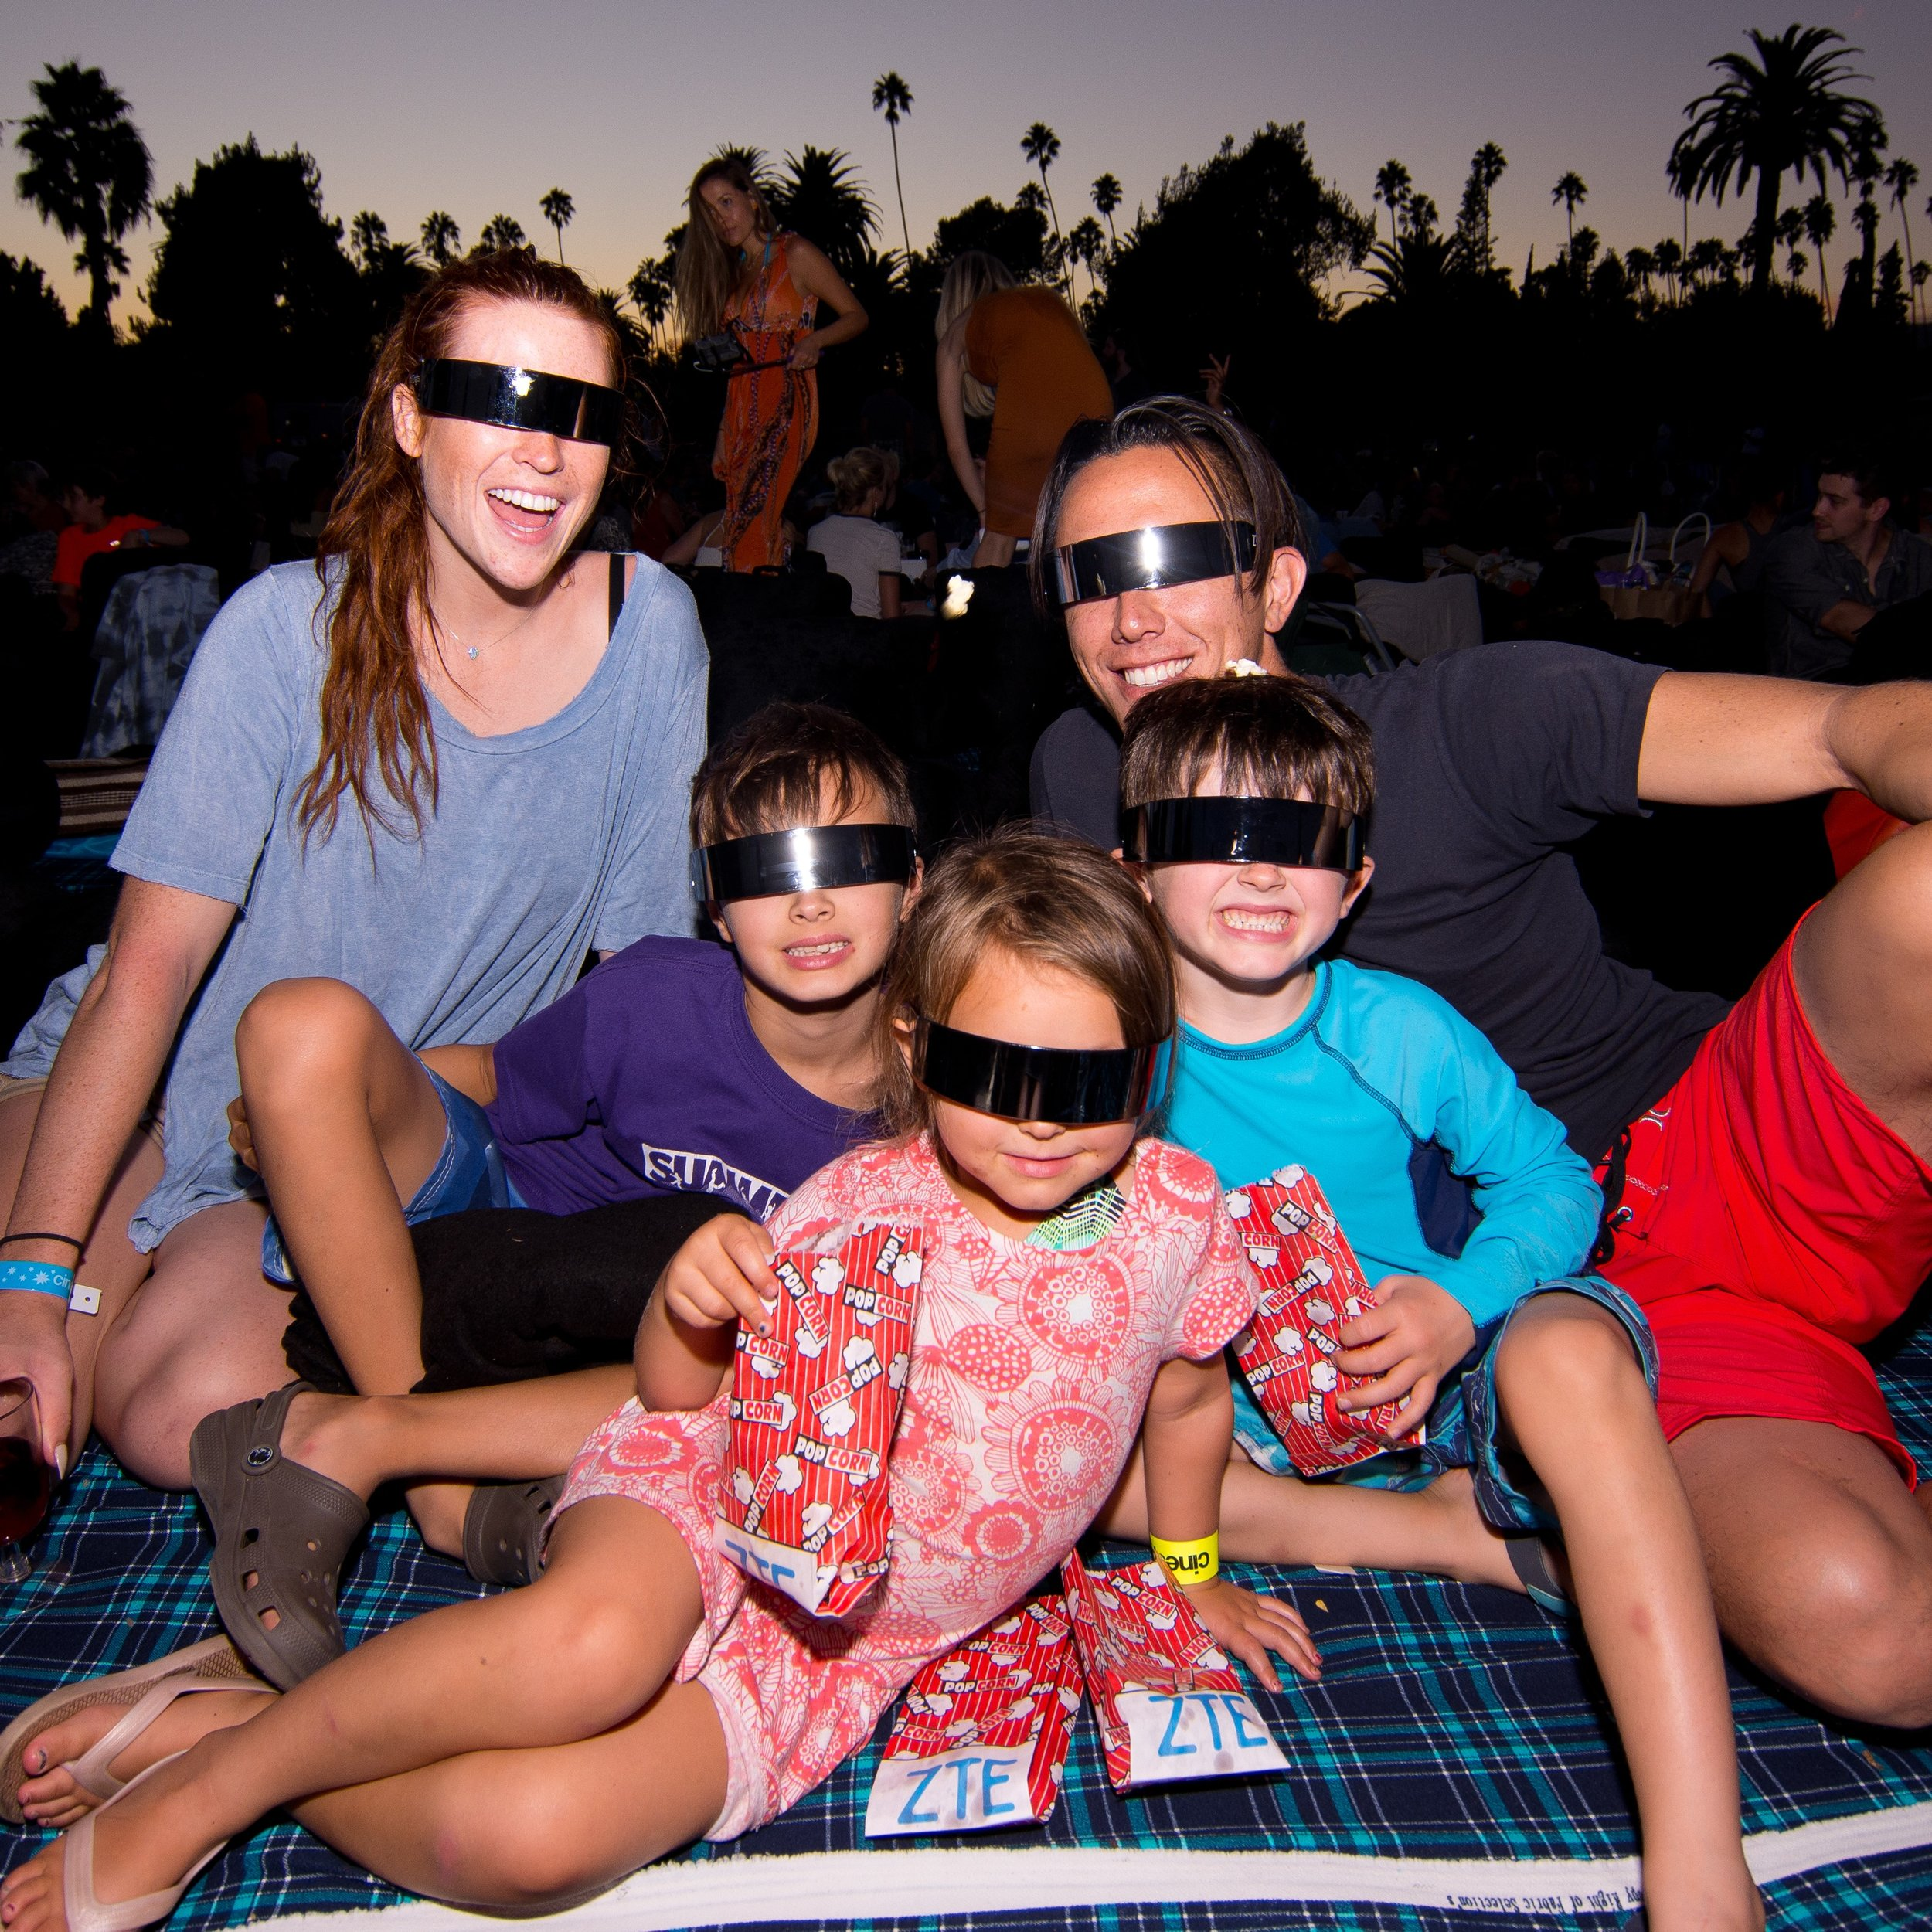 ZTE Summer Nights at Cinespia